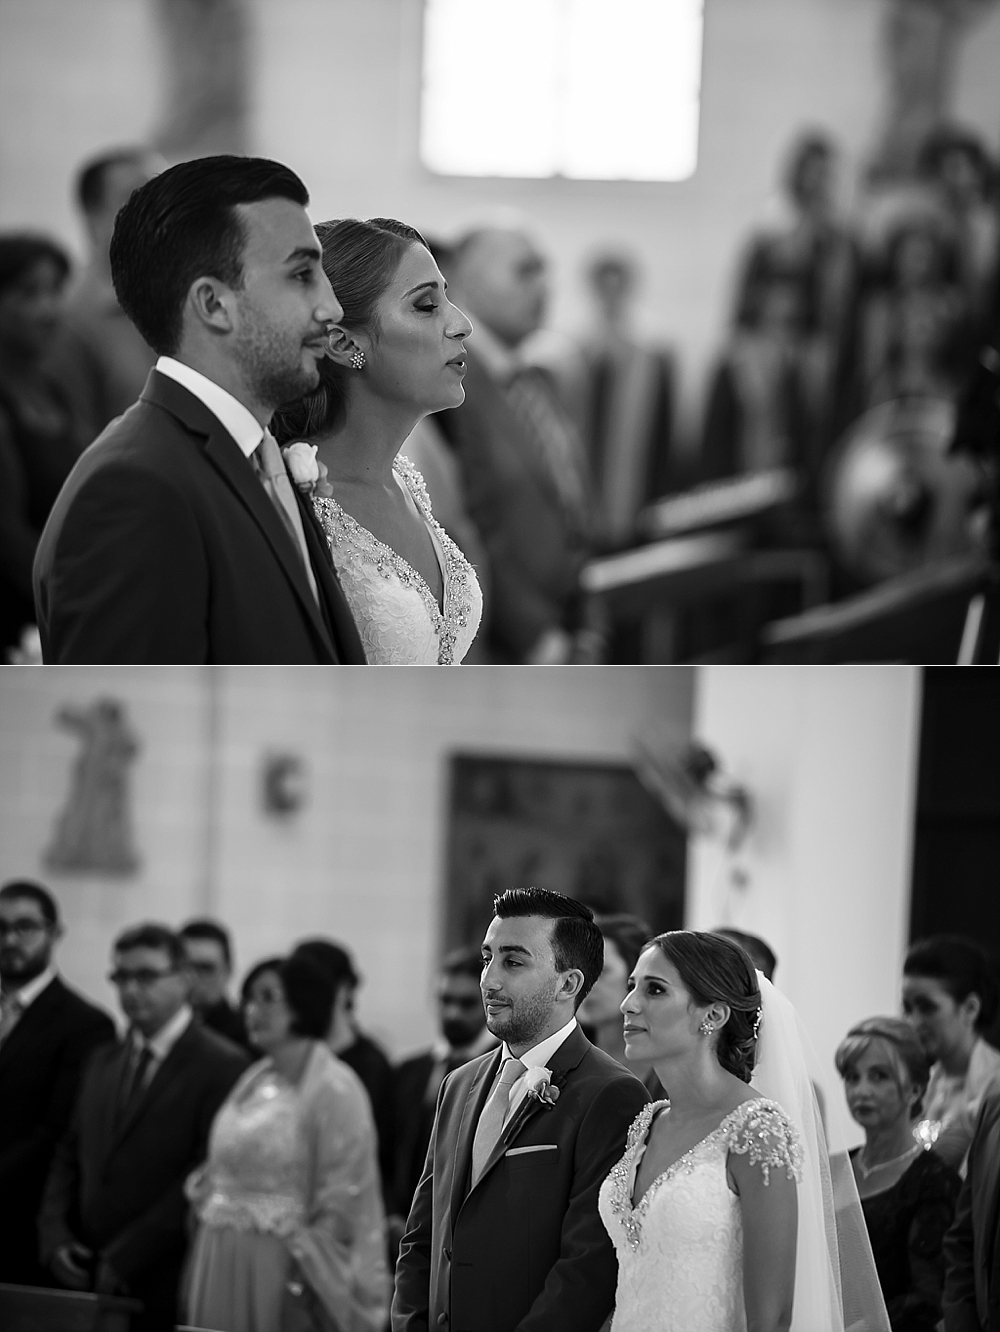 Gail & Shawn - Wedding Photography Malta - Villa Arrigo - Shane P. Watts Photography